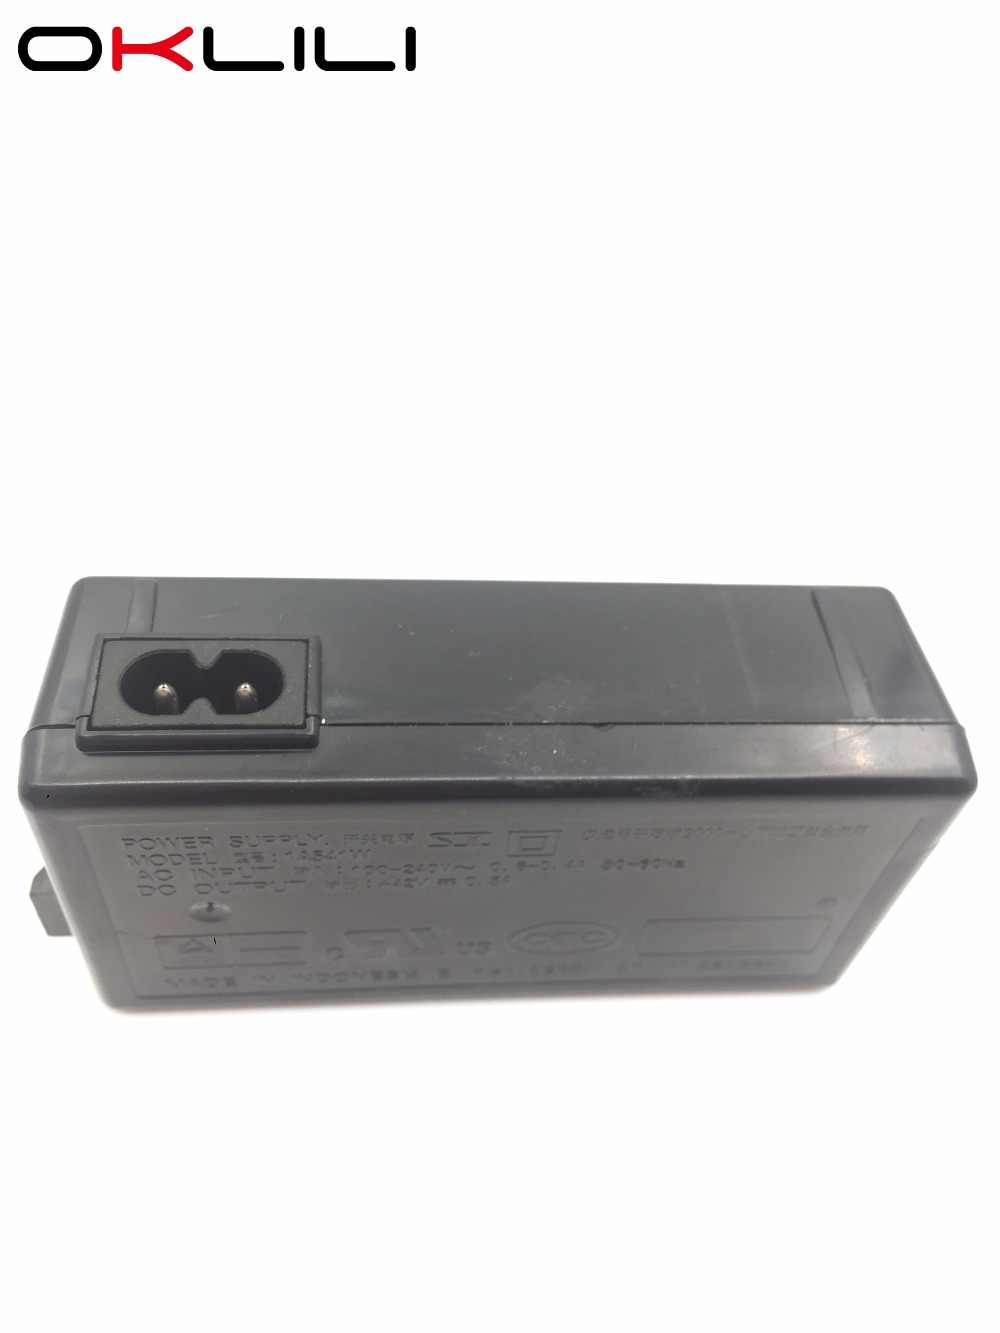 AC Power Supply Adapter Charger untuk Epson L210 L110 L120 L220 L300 L310 L355 L350 L360 L365 L455 L555 L565 L100 L132 L130 L222